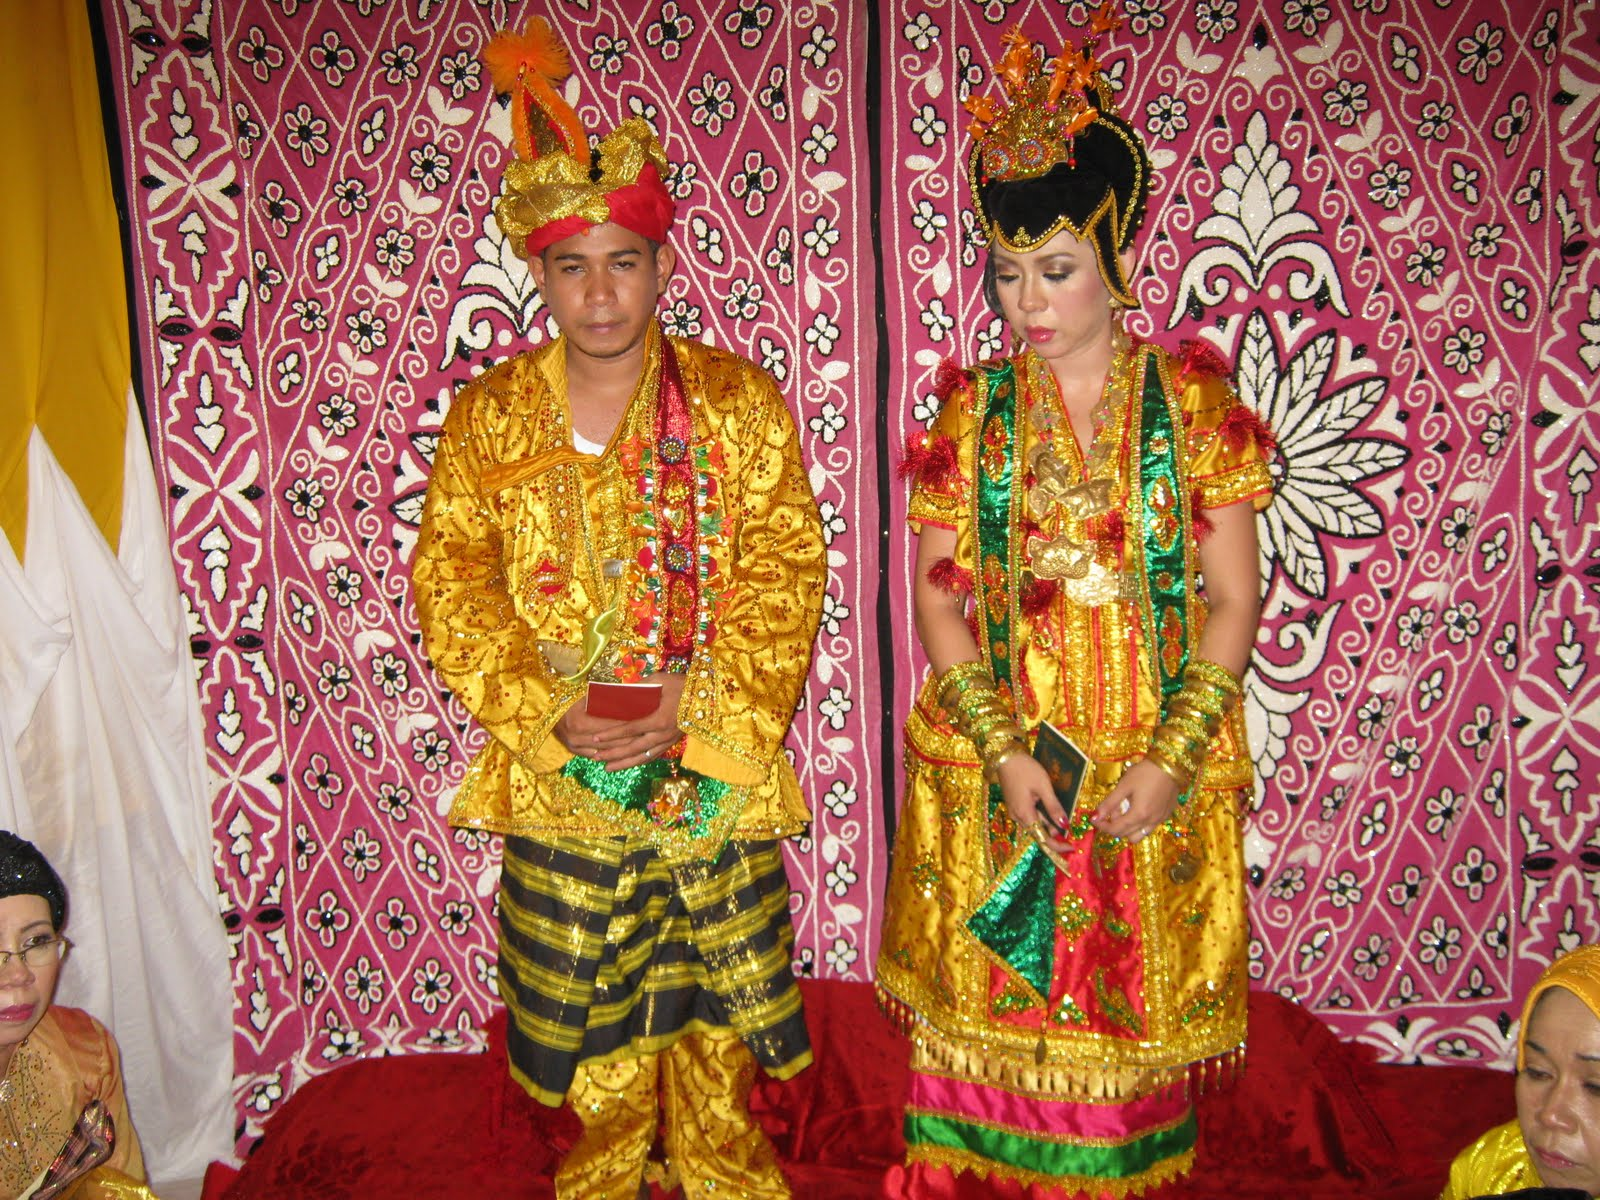 News kabali indonesian culture on the world